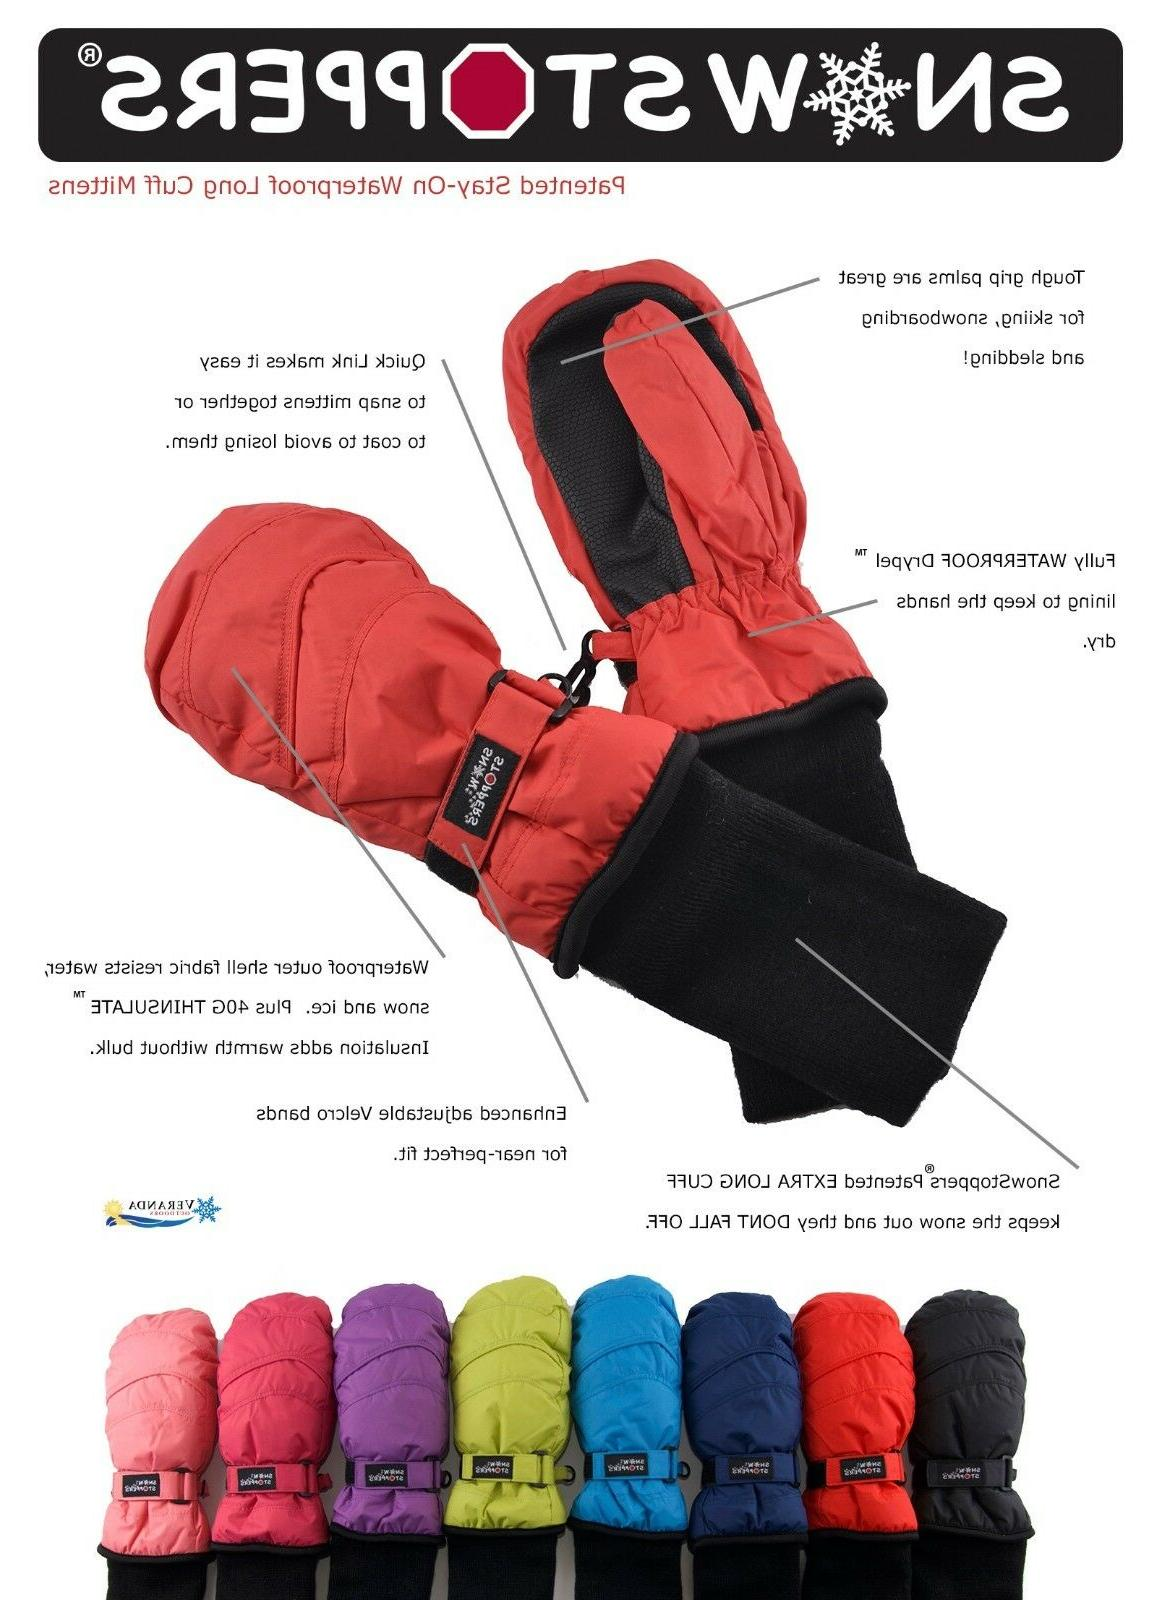 SnowStoppers Original Nylon for 6 months - years